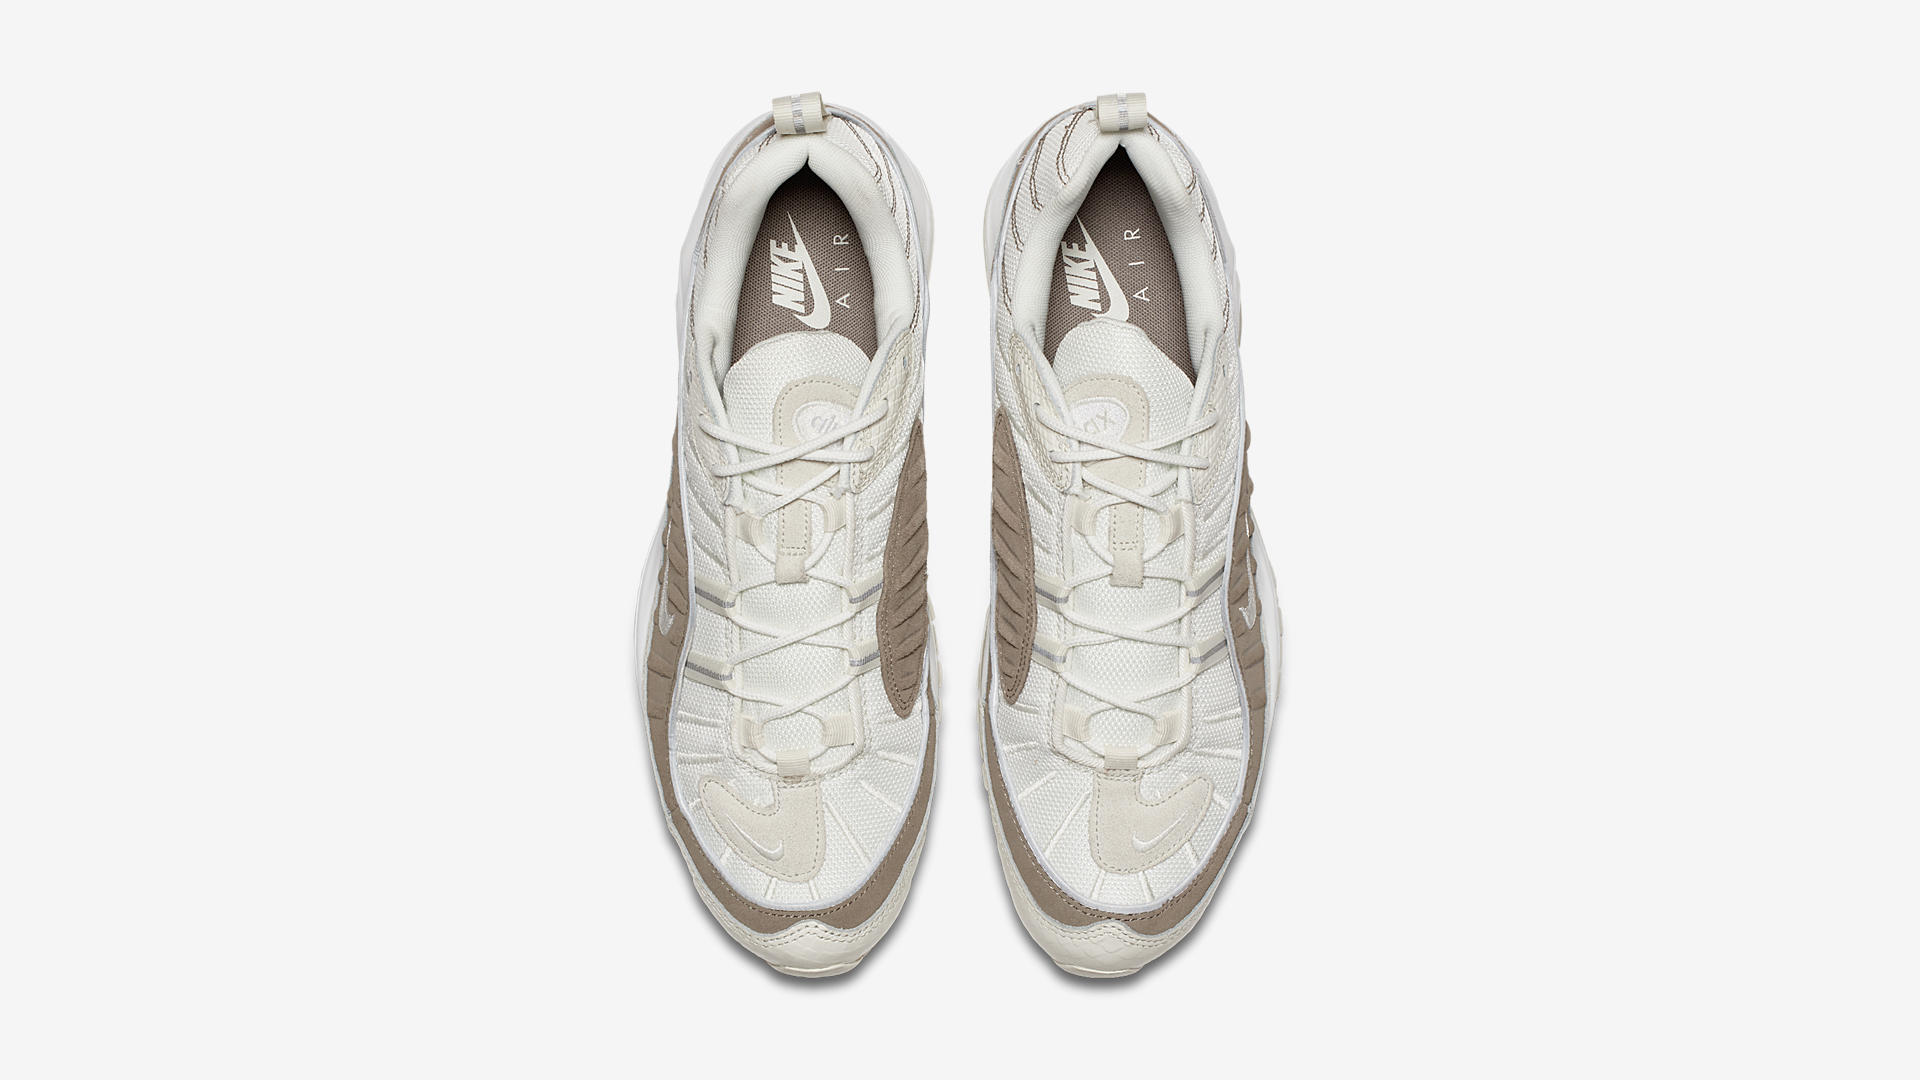 AO9380 100 Nike Air Max 98 Sail Cream 3